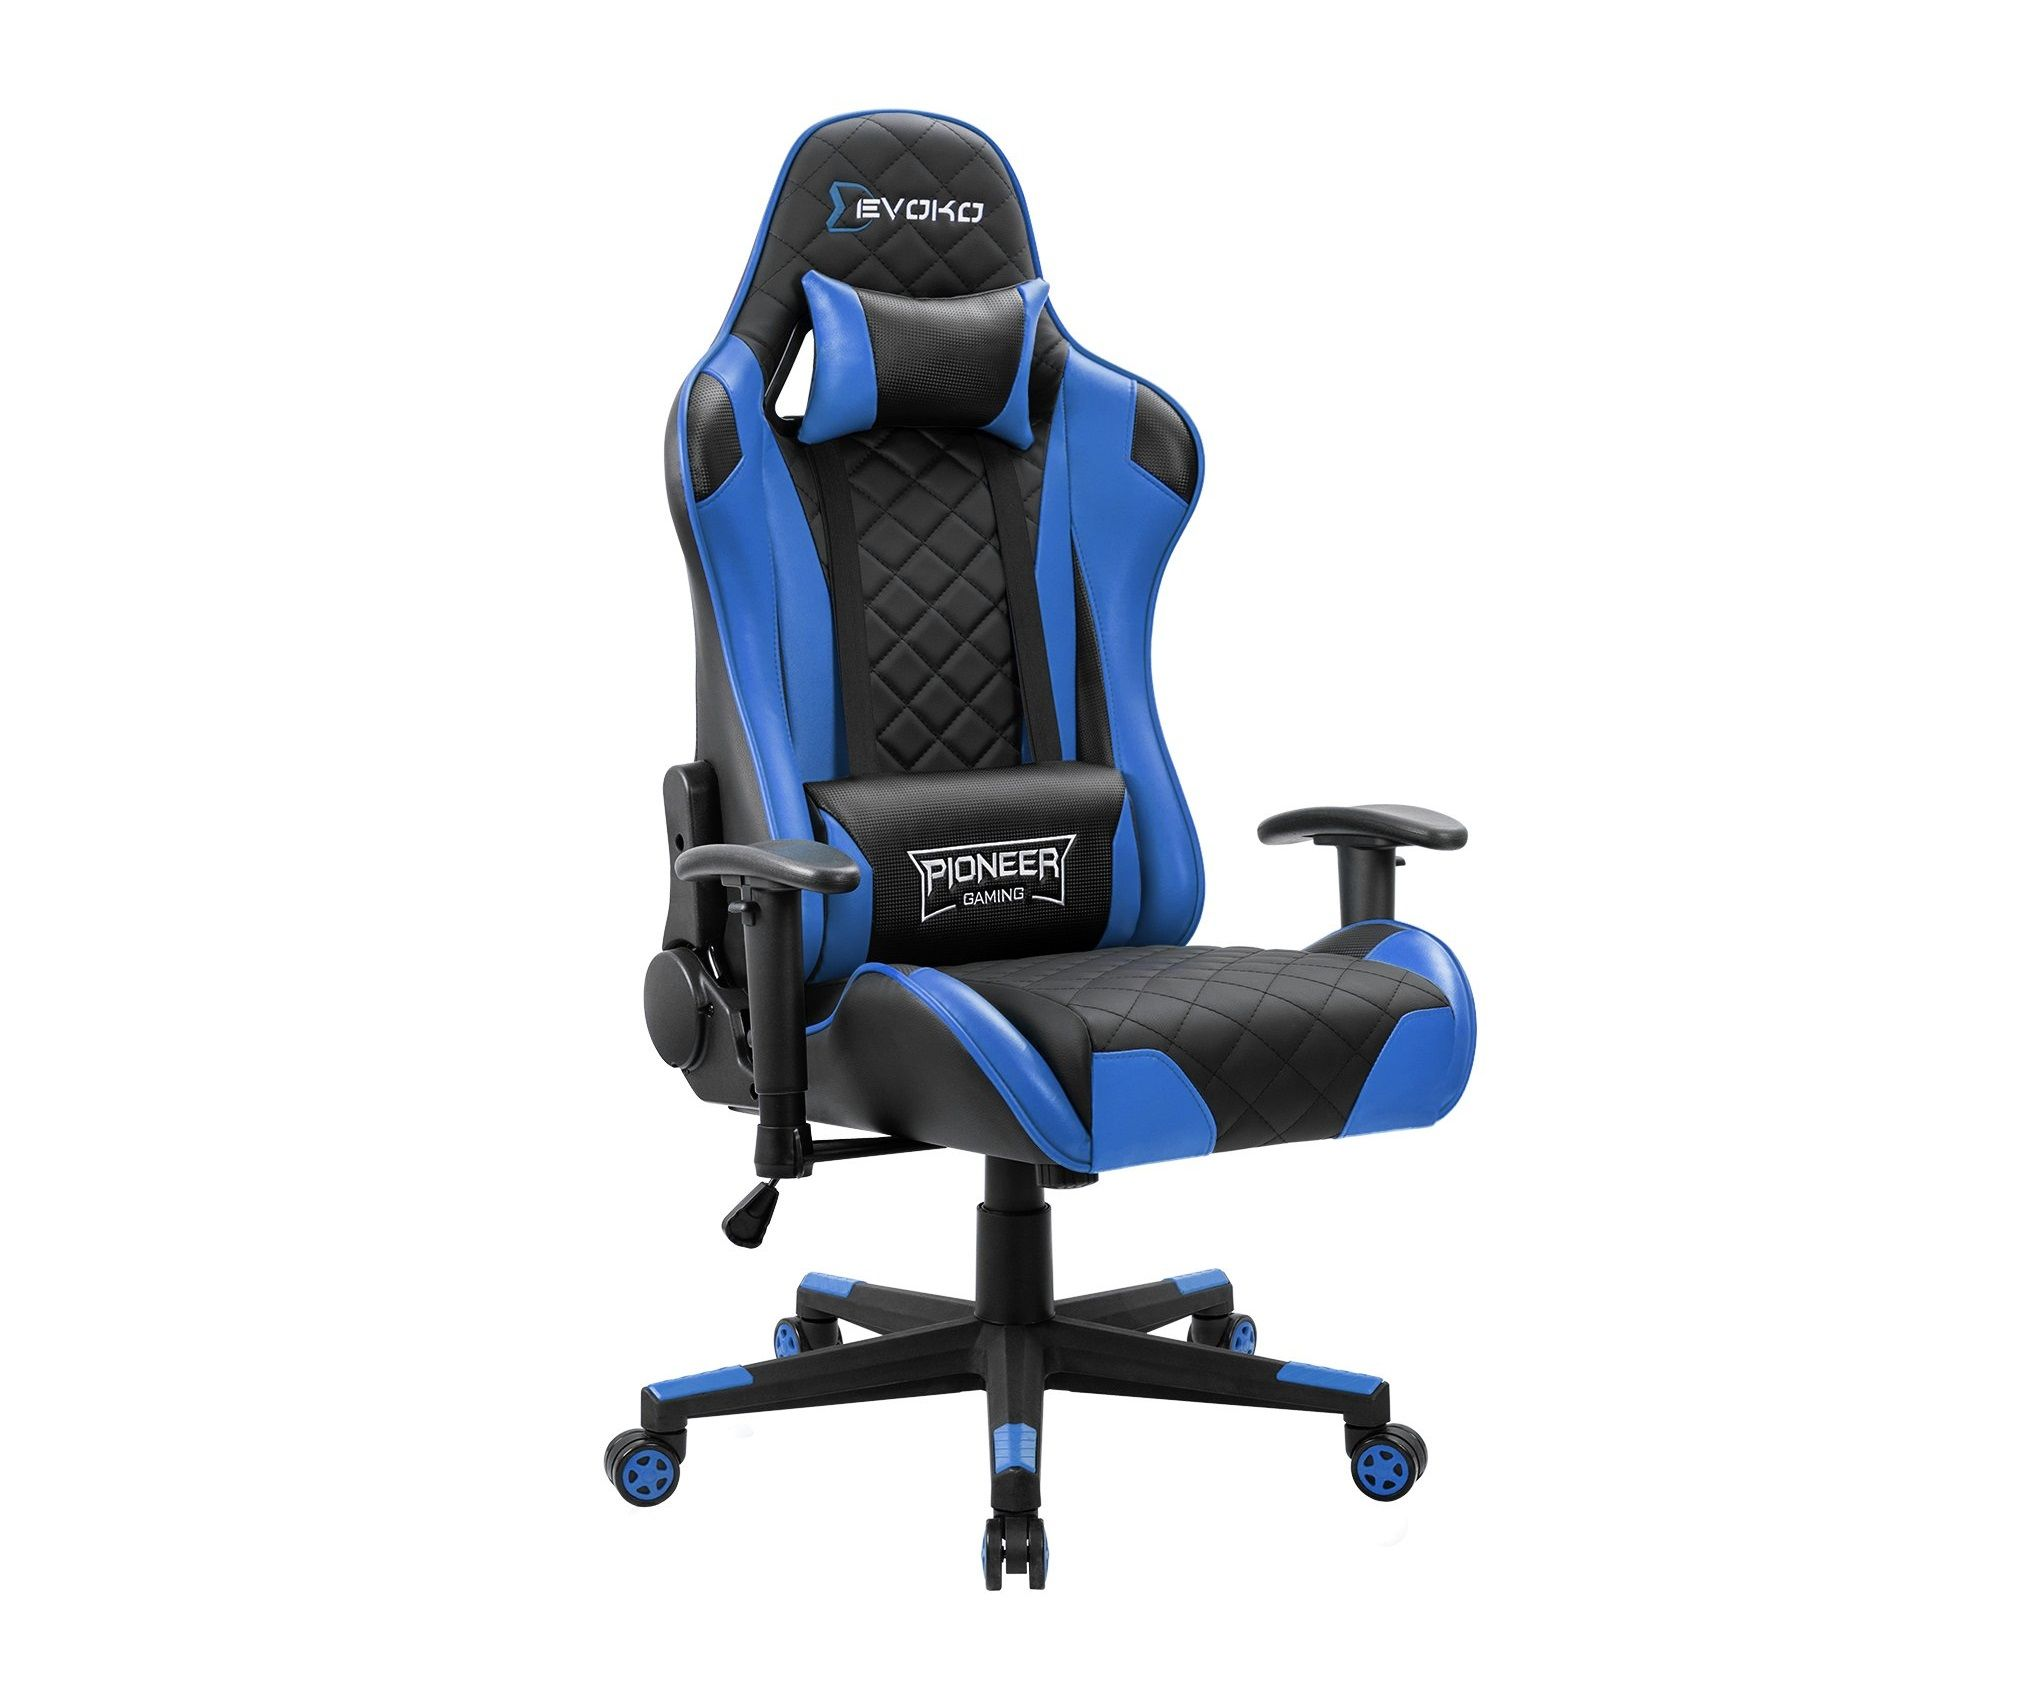 Top 5 Best Gaming Chairs under 200 in 2019 Gaming chair